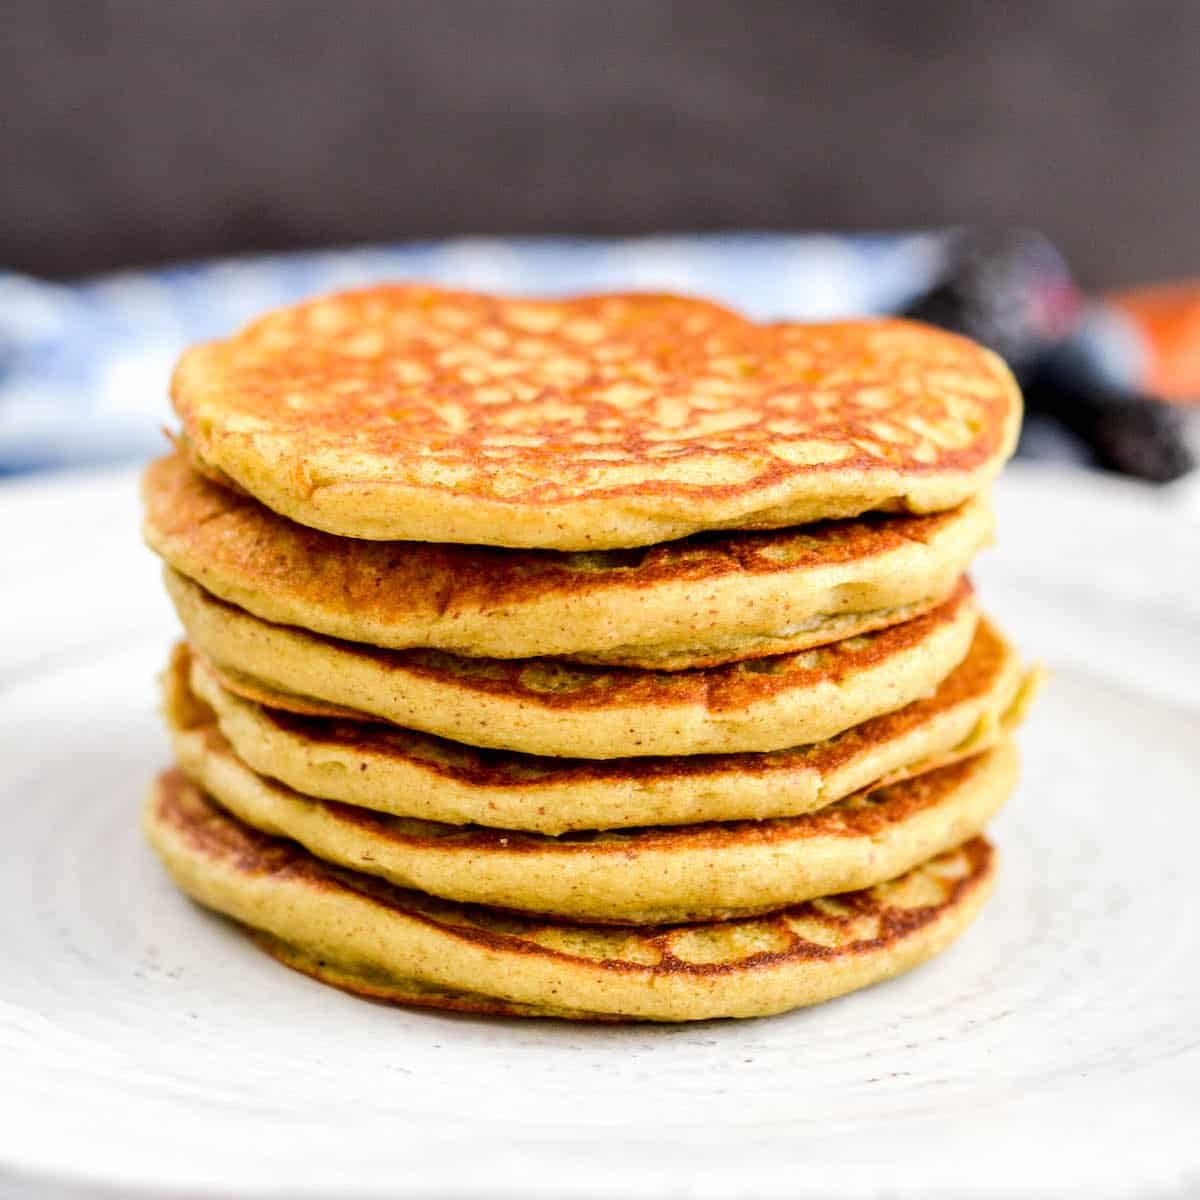 6 stacked zucchini banana pancakes on a plate.